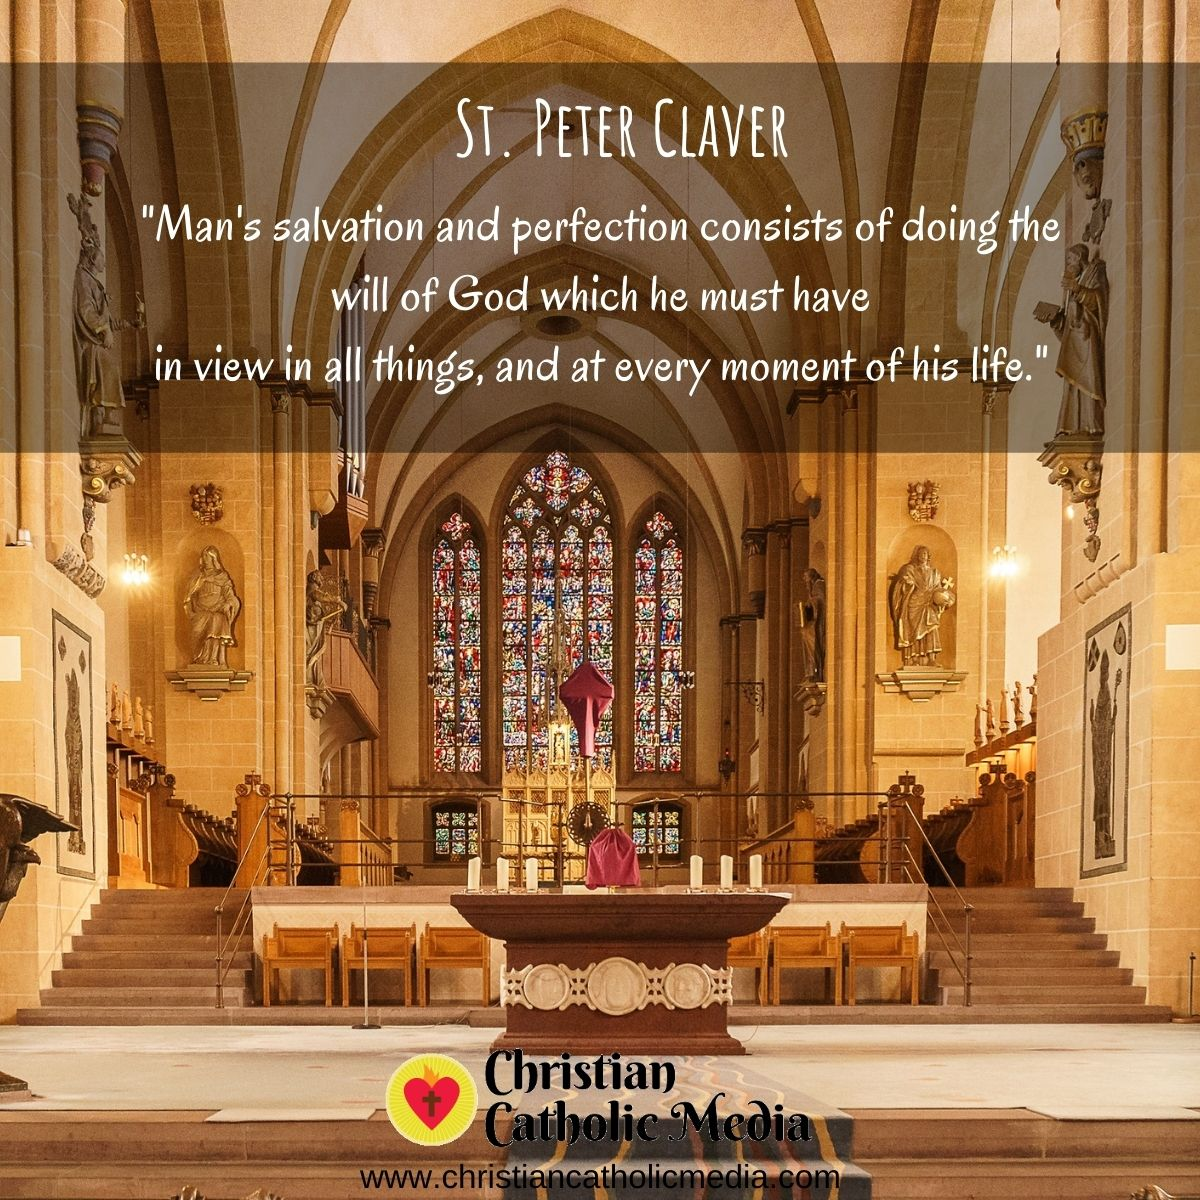 St. Peter Claver - Saturday February 13, 2021